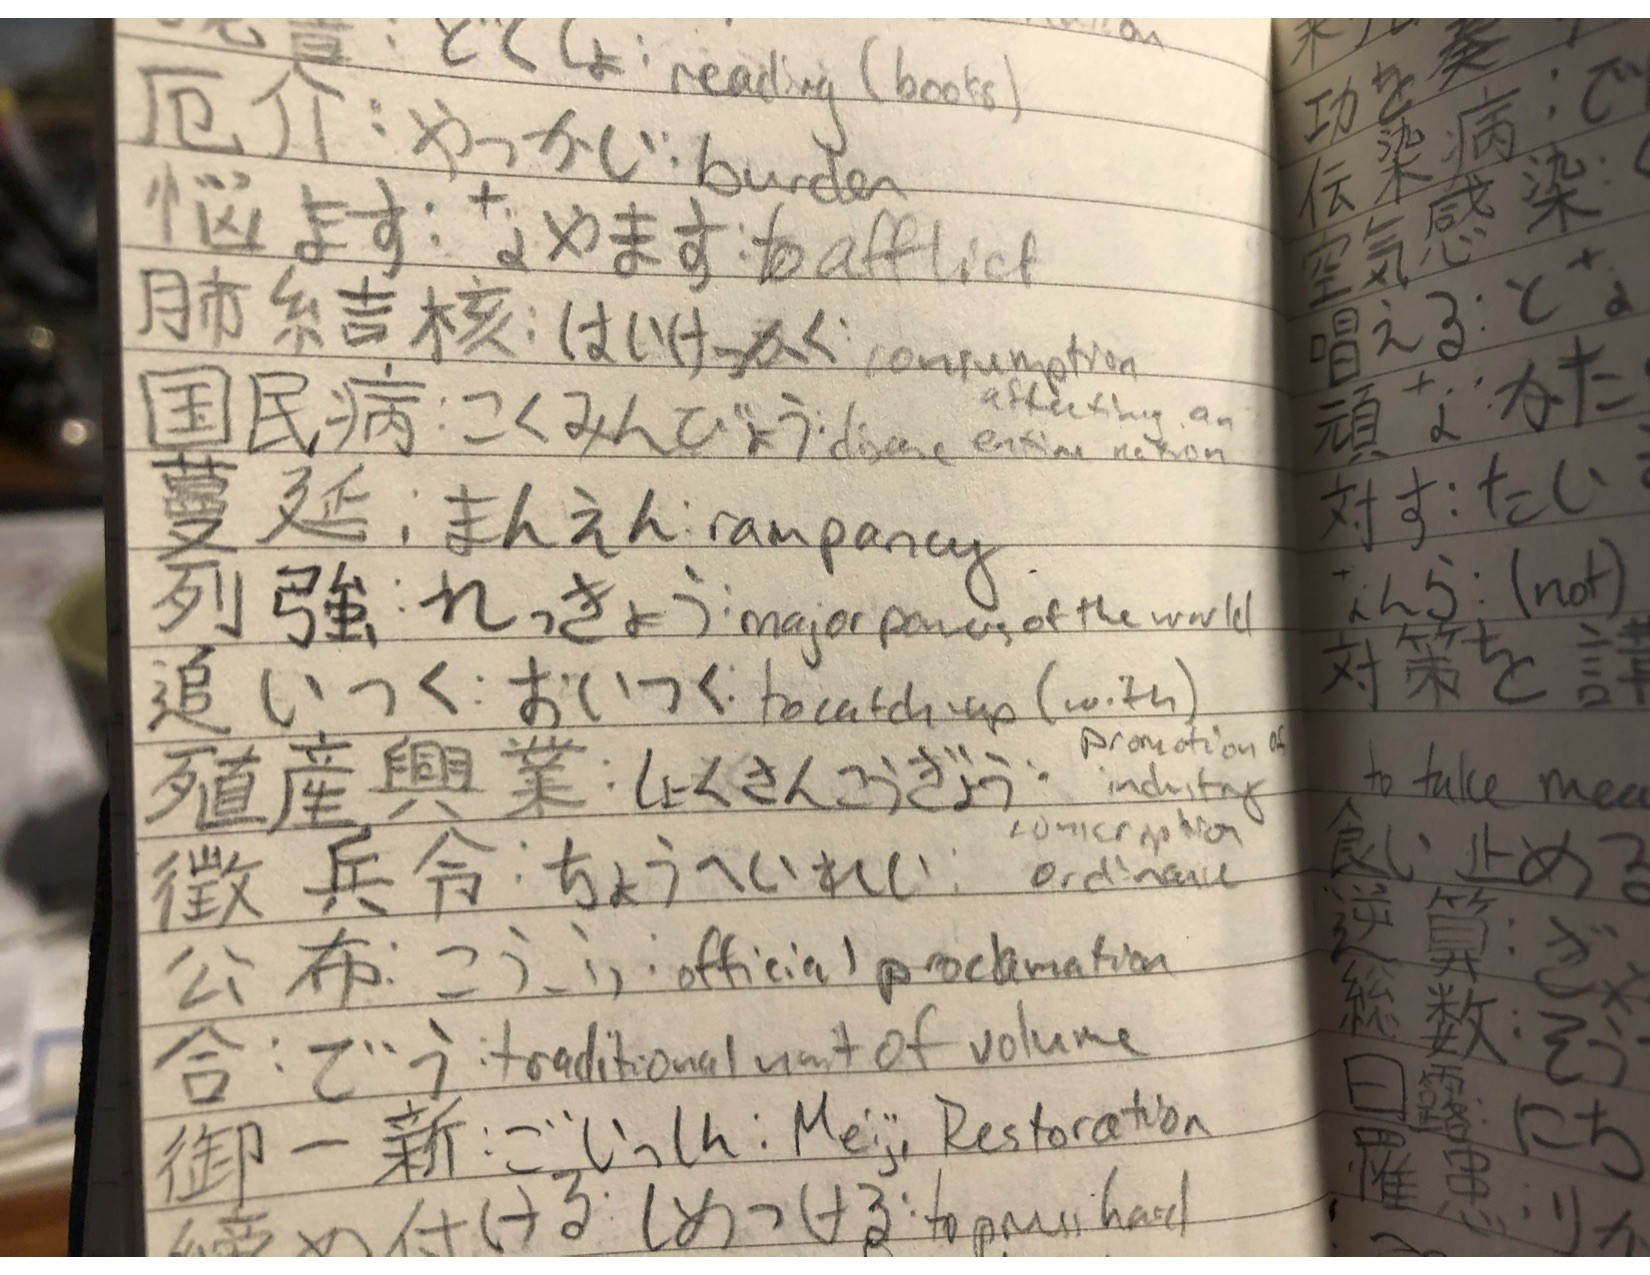 notebook with sloppy kanji, hiragana, and English for each vocabulary word in pencil